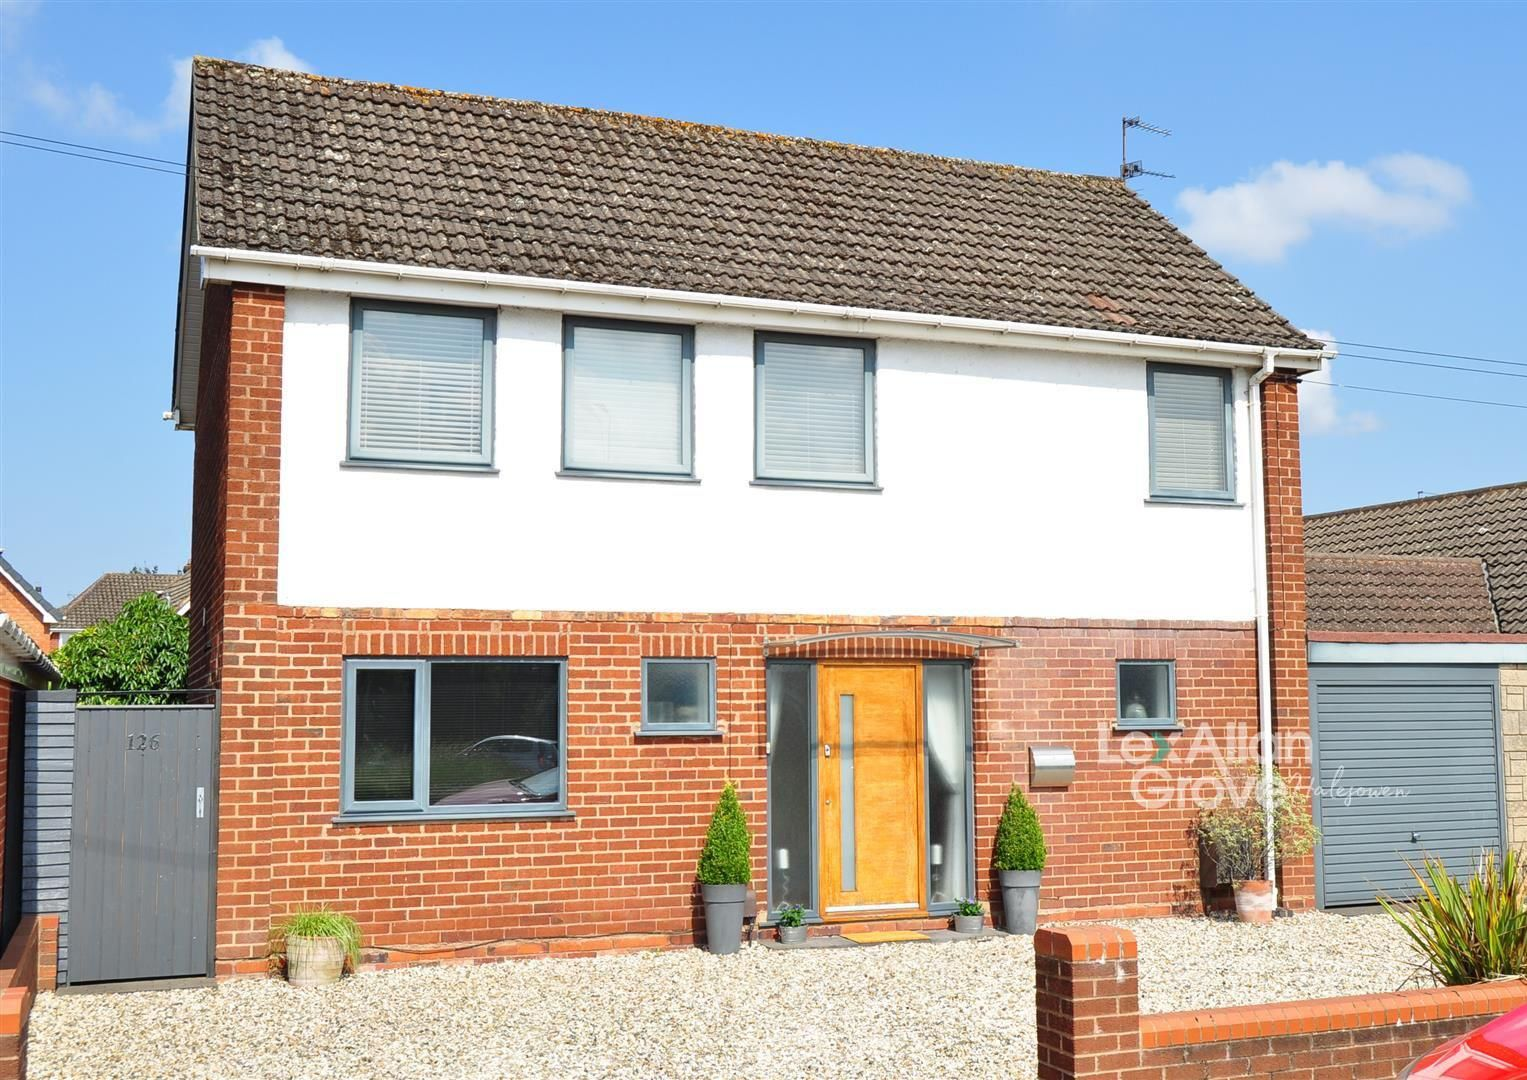 3 bed detached for sale in Hayley Green, B63